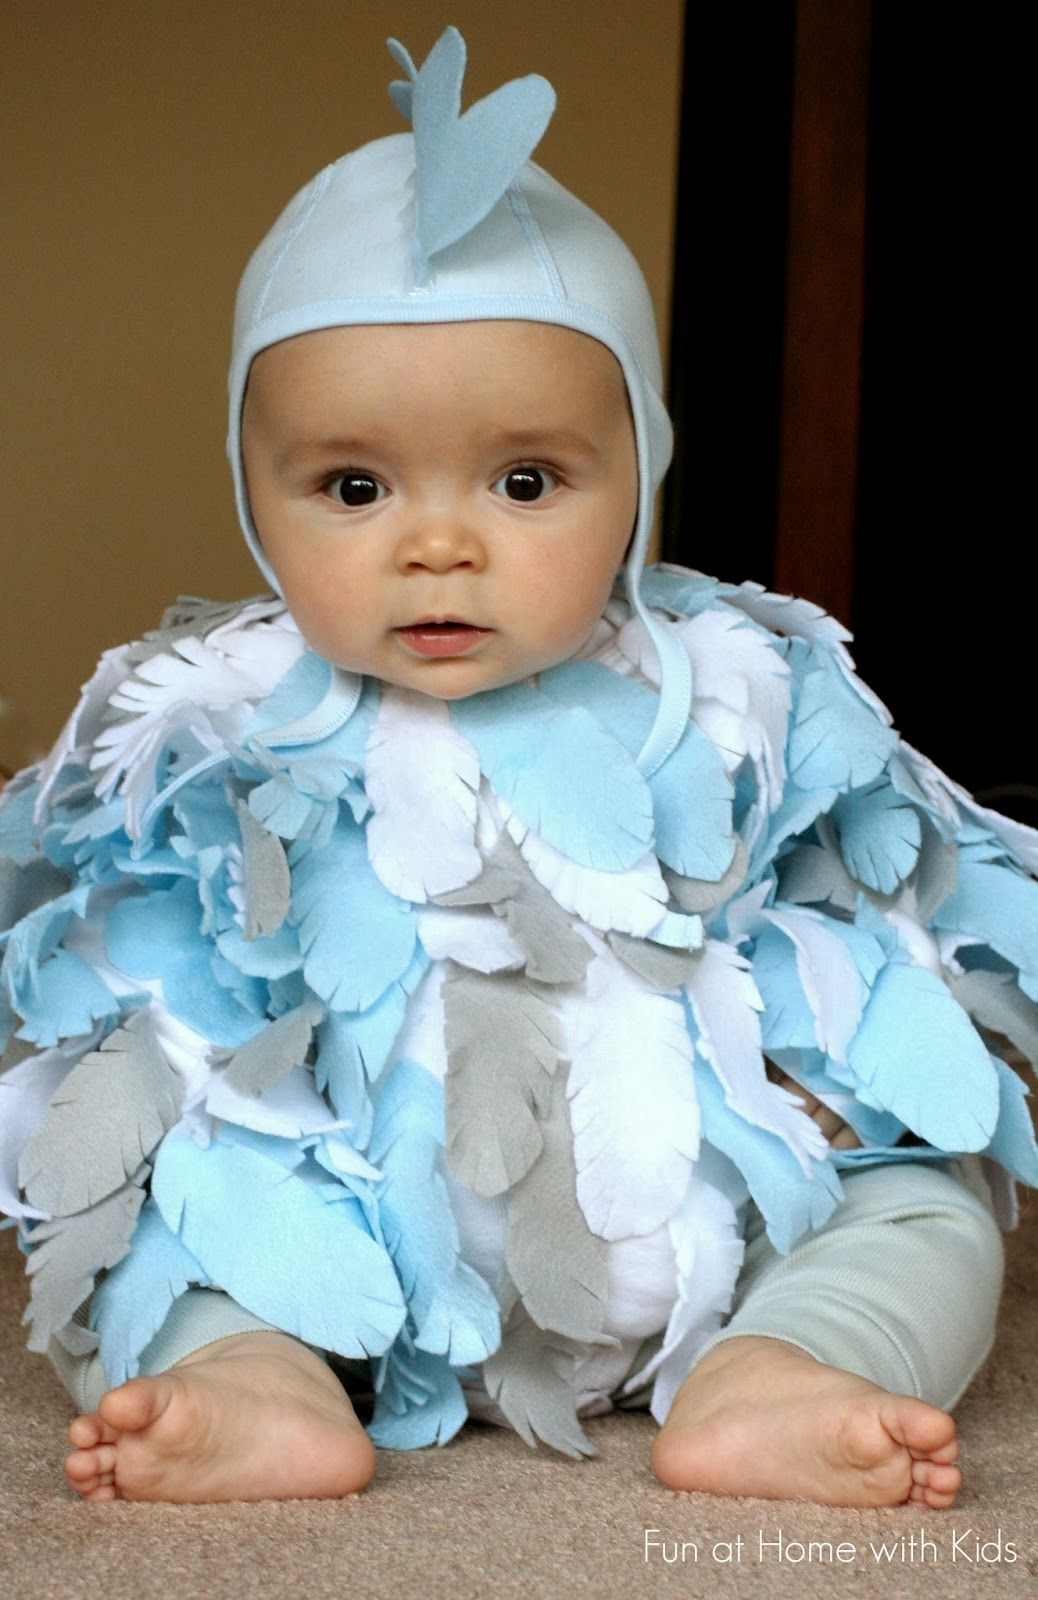 Cute Diy Baby Halloween Costume Ideas Best Homemade Infant Halloween Costumes